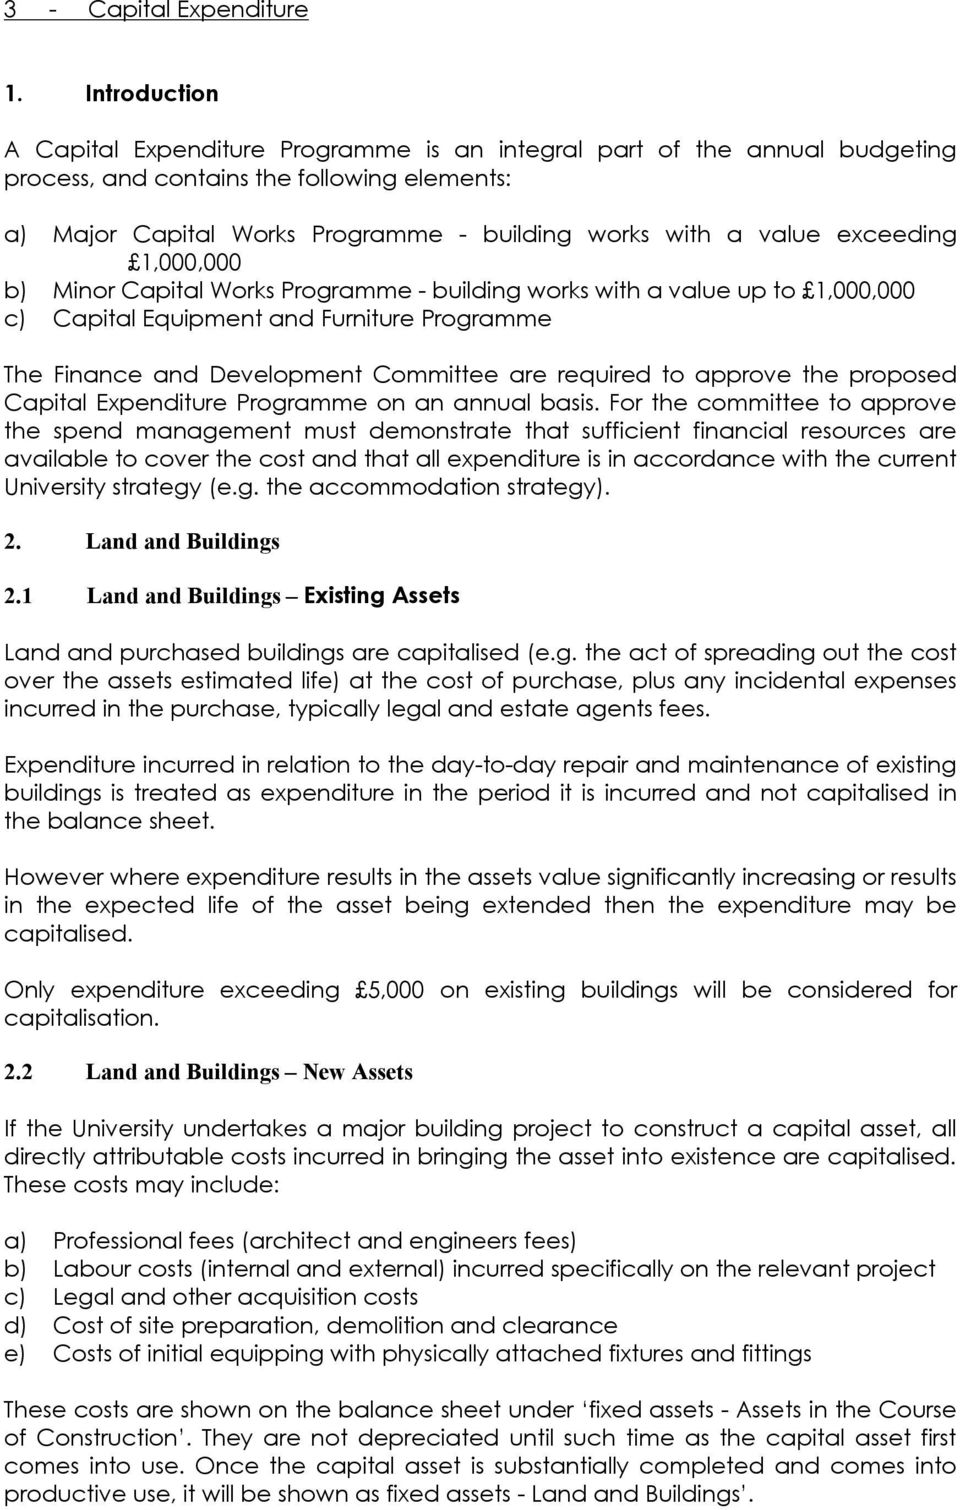 exceeding 1,000,000 b) Minor Capital Works Programme building works with a value up to 1,000,000 c) Capital Equipment and Furniture Programme The Finance and Development Committee are required to